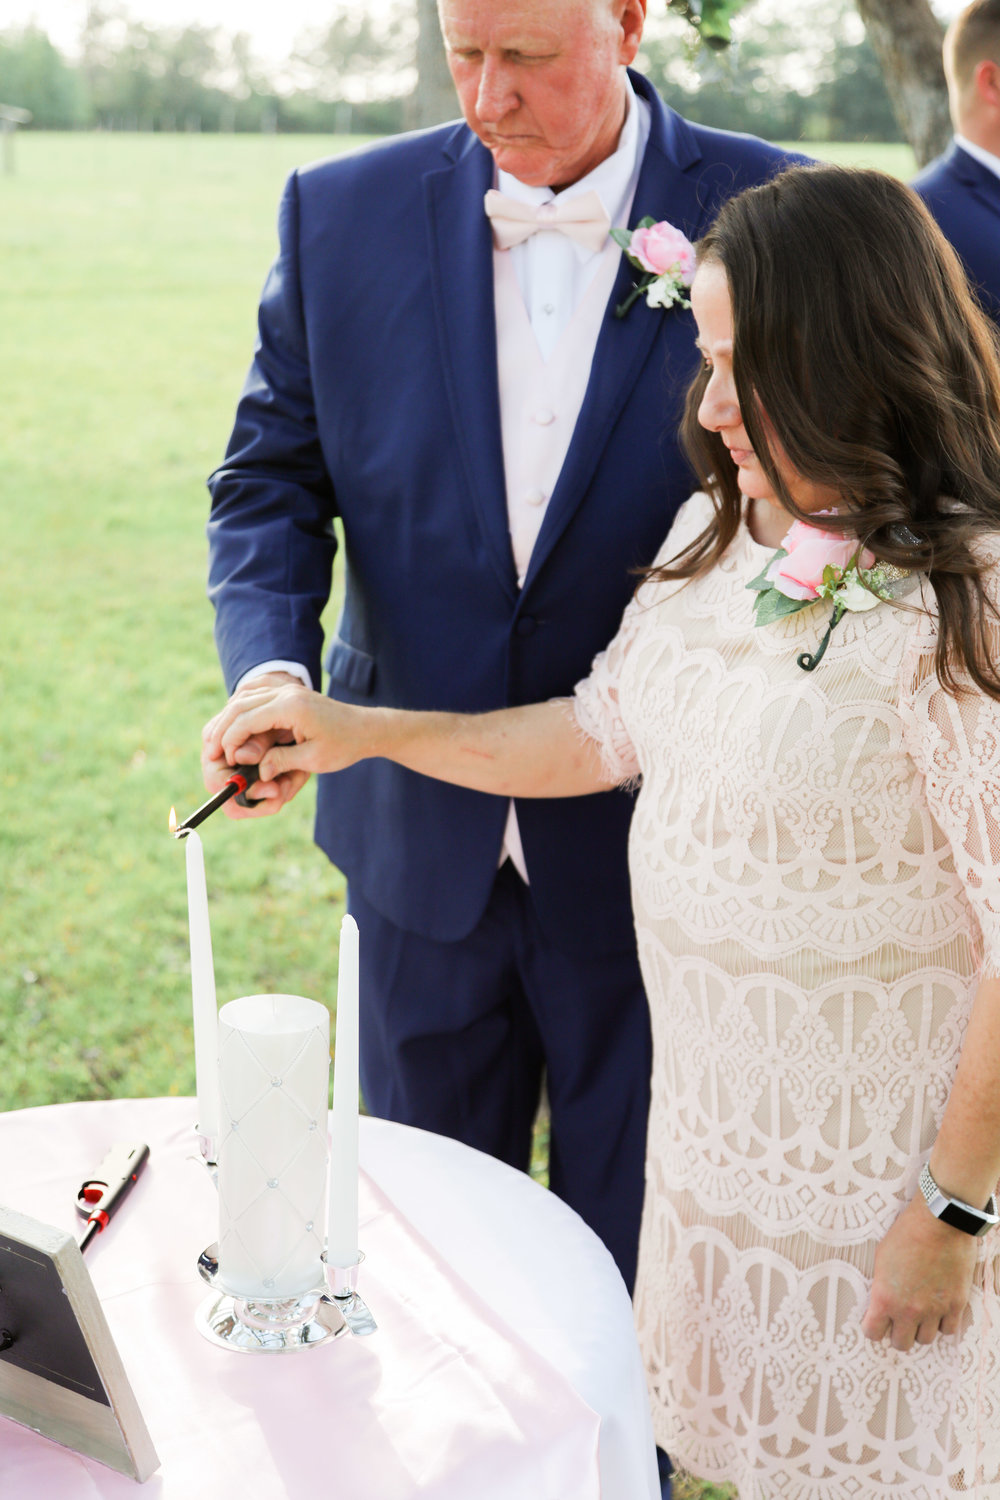 carter_ceremony_2018-22.jpg